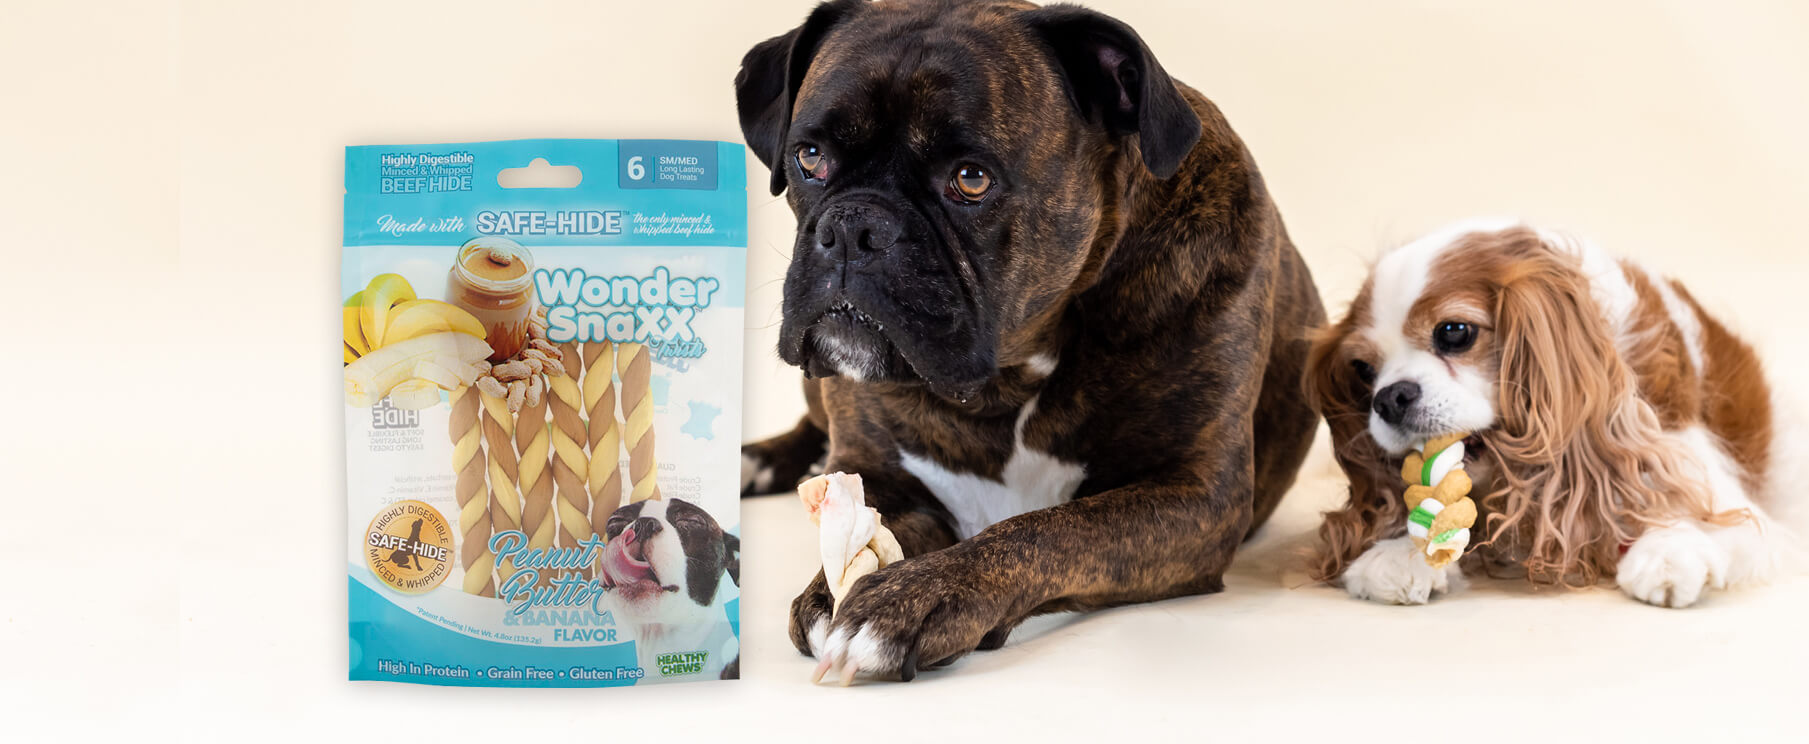 Wonder Snaxx Twists – Peanut Butter & Banana